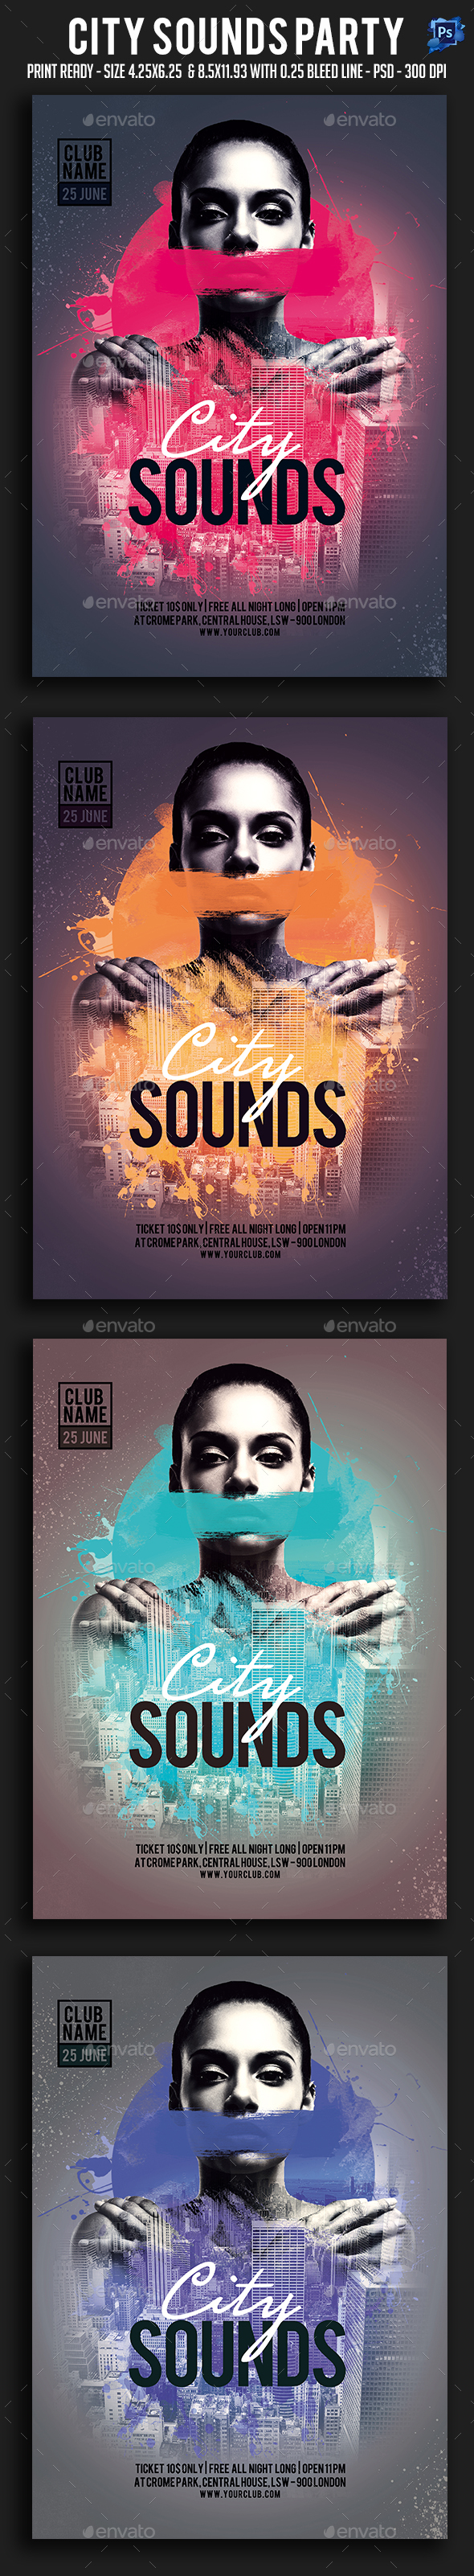 City Sounds Party Flyer - Clubs & Parties Events